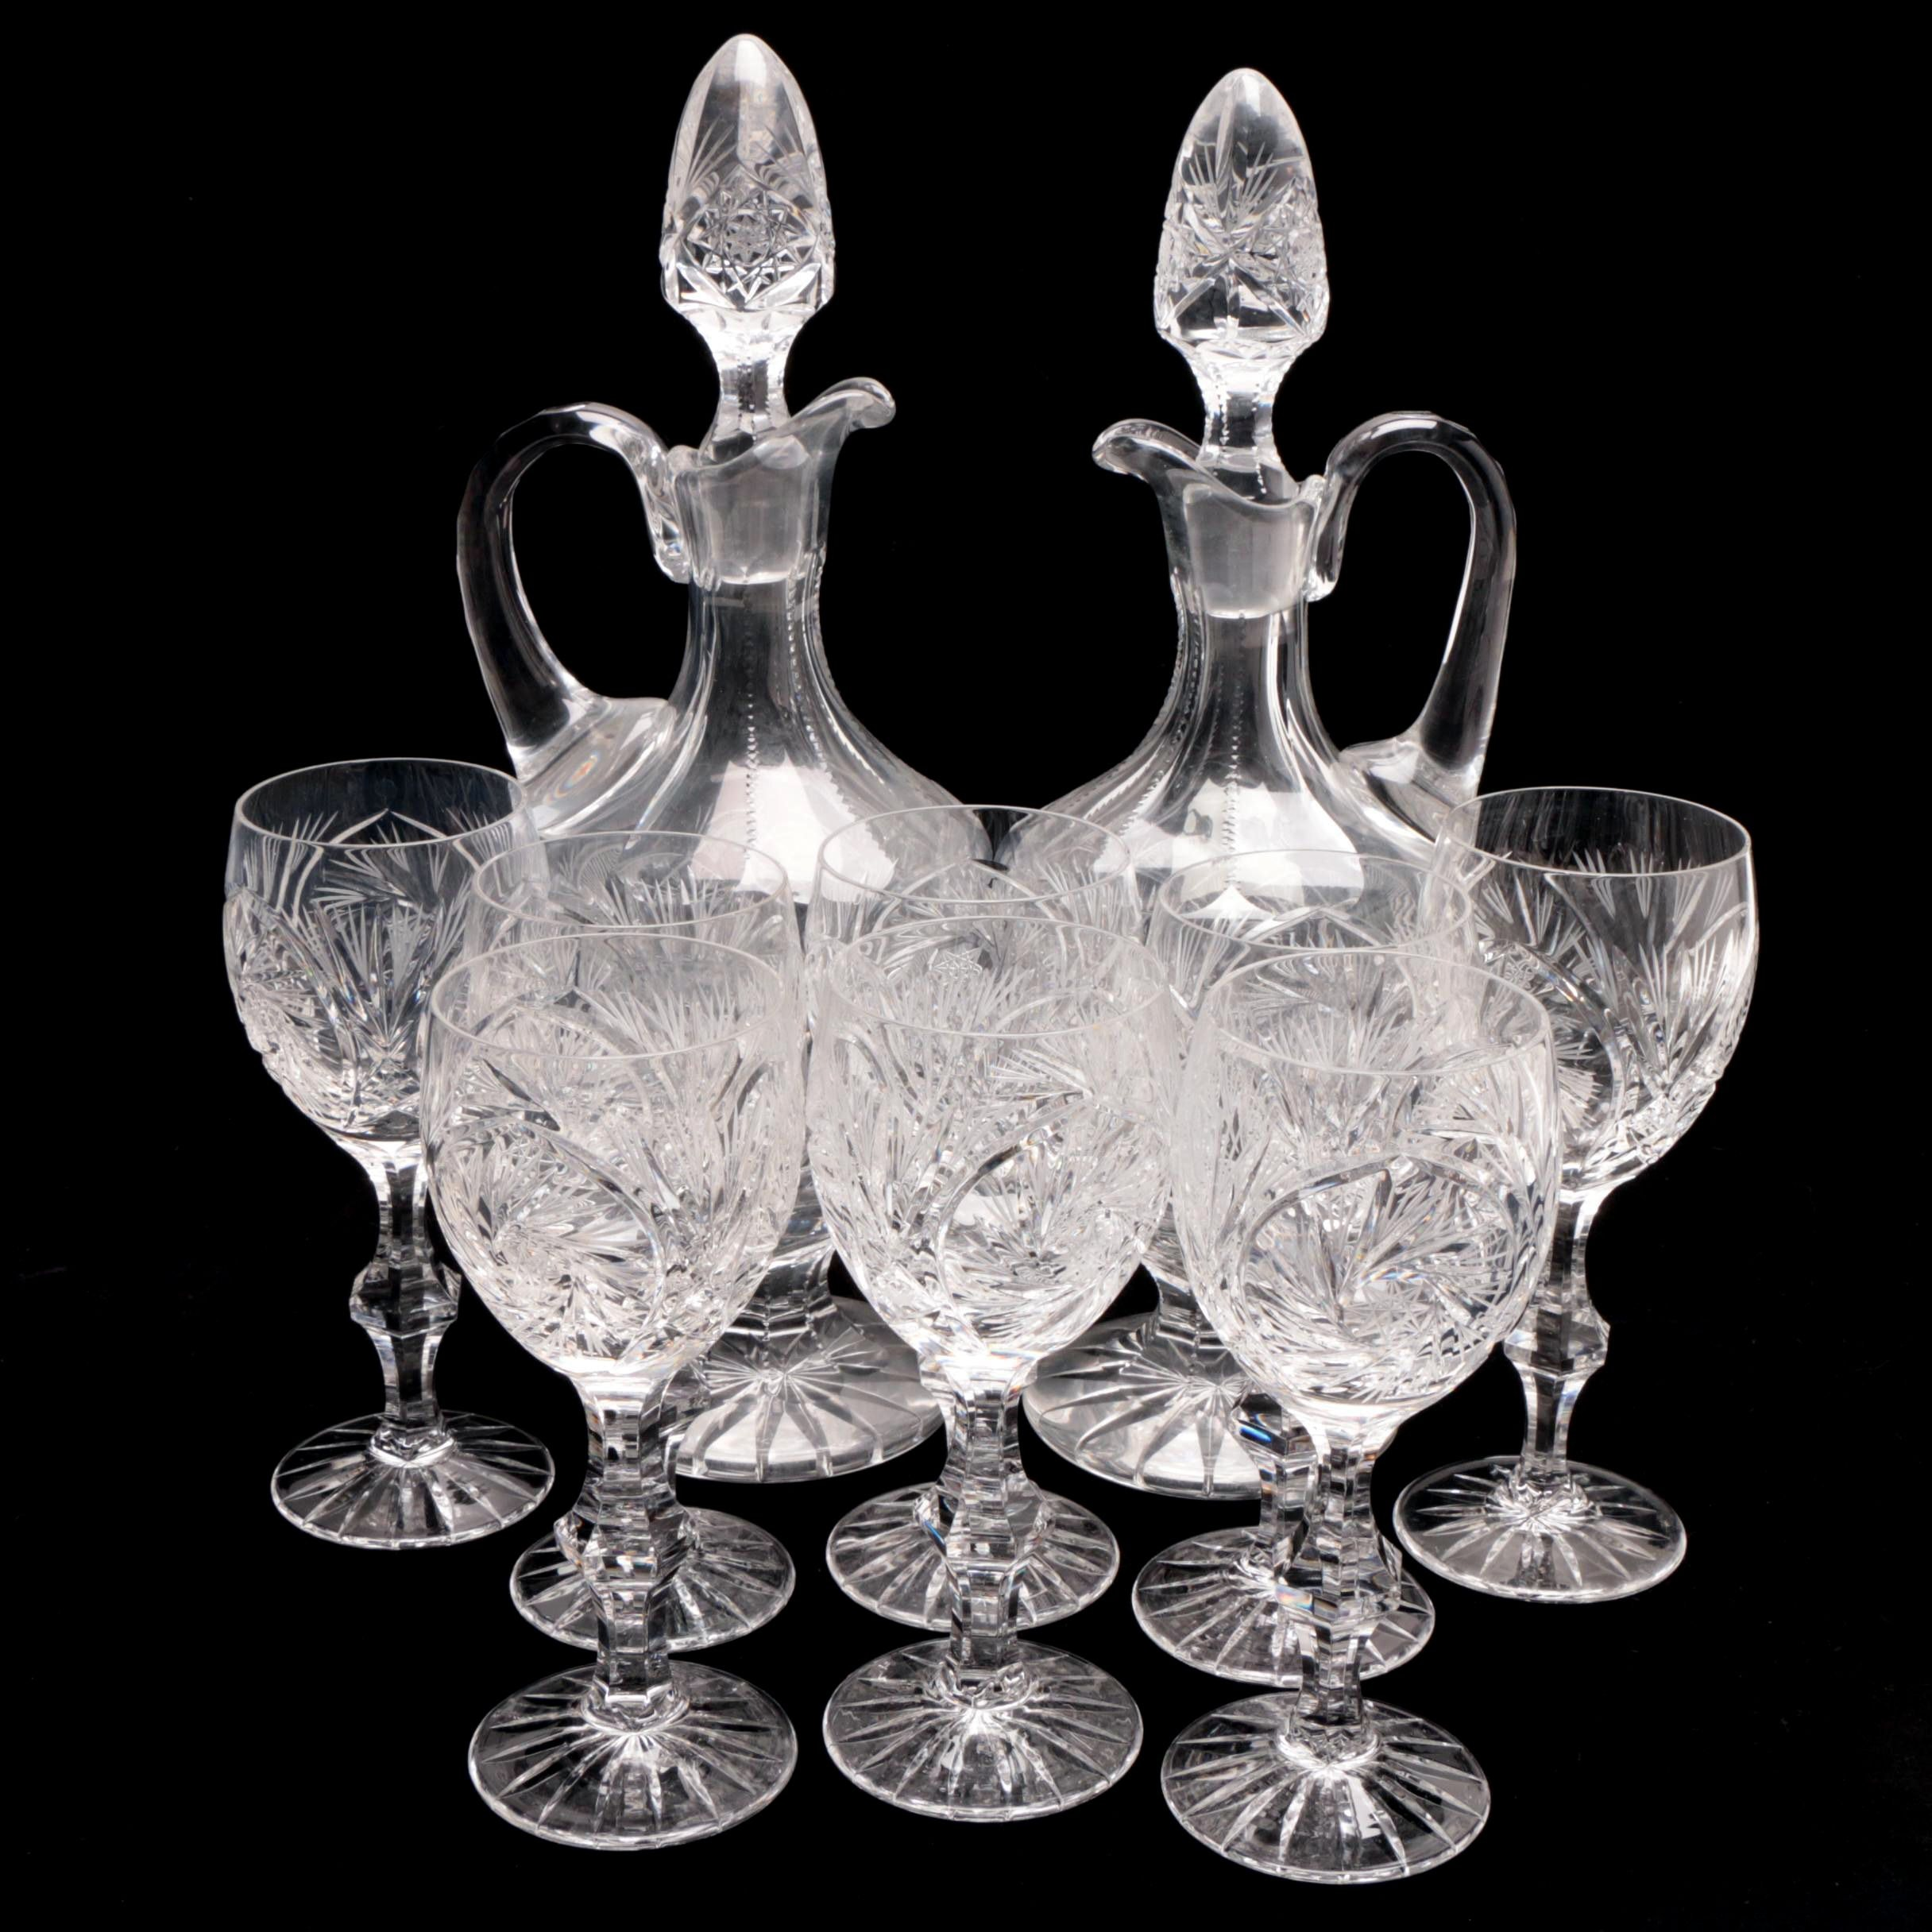 Hand-Cut Crystal Wine Glasses With Matching Claret Jugs